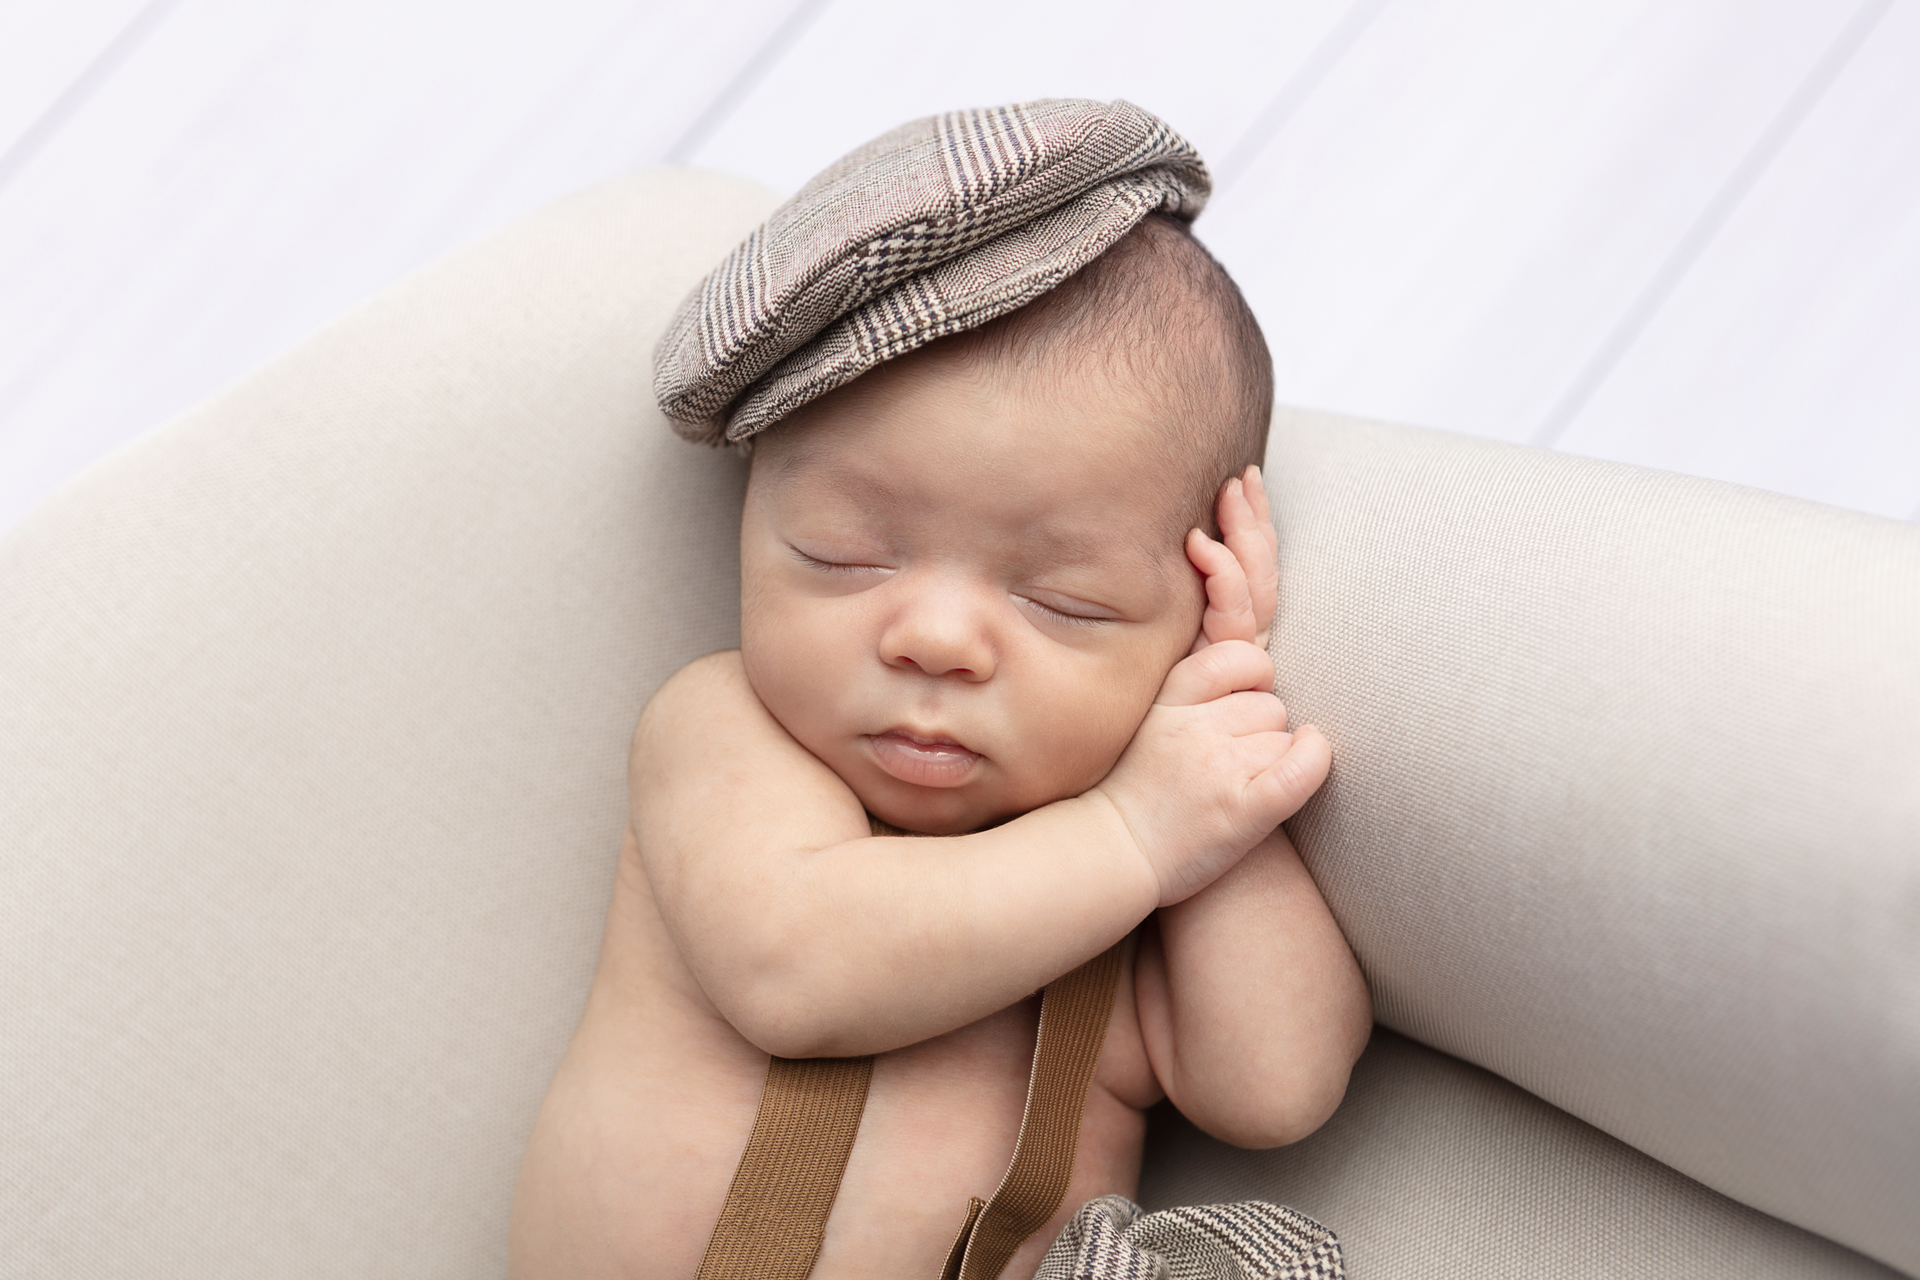 newborn baby boy with his hands folded under his head, wearing a plaid cap; CT baby photography